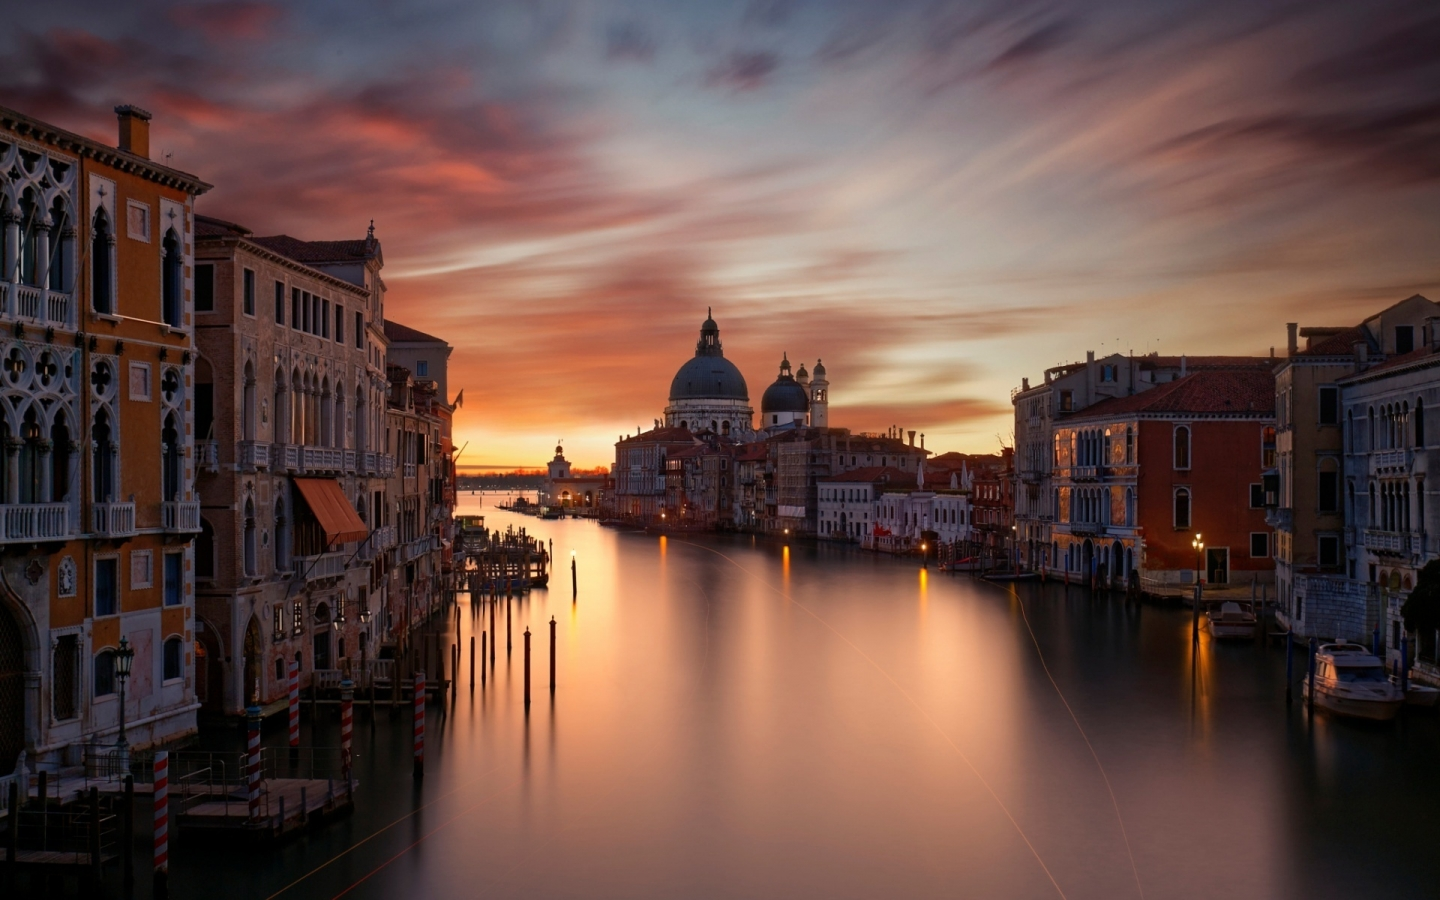 The Grand Canal Venice for 1440 x 900 widescreen resolution